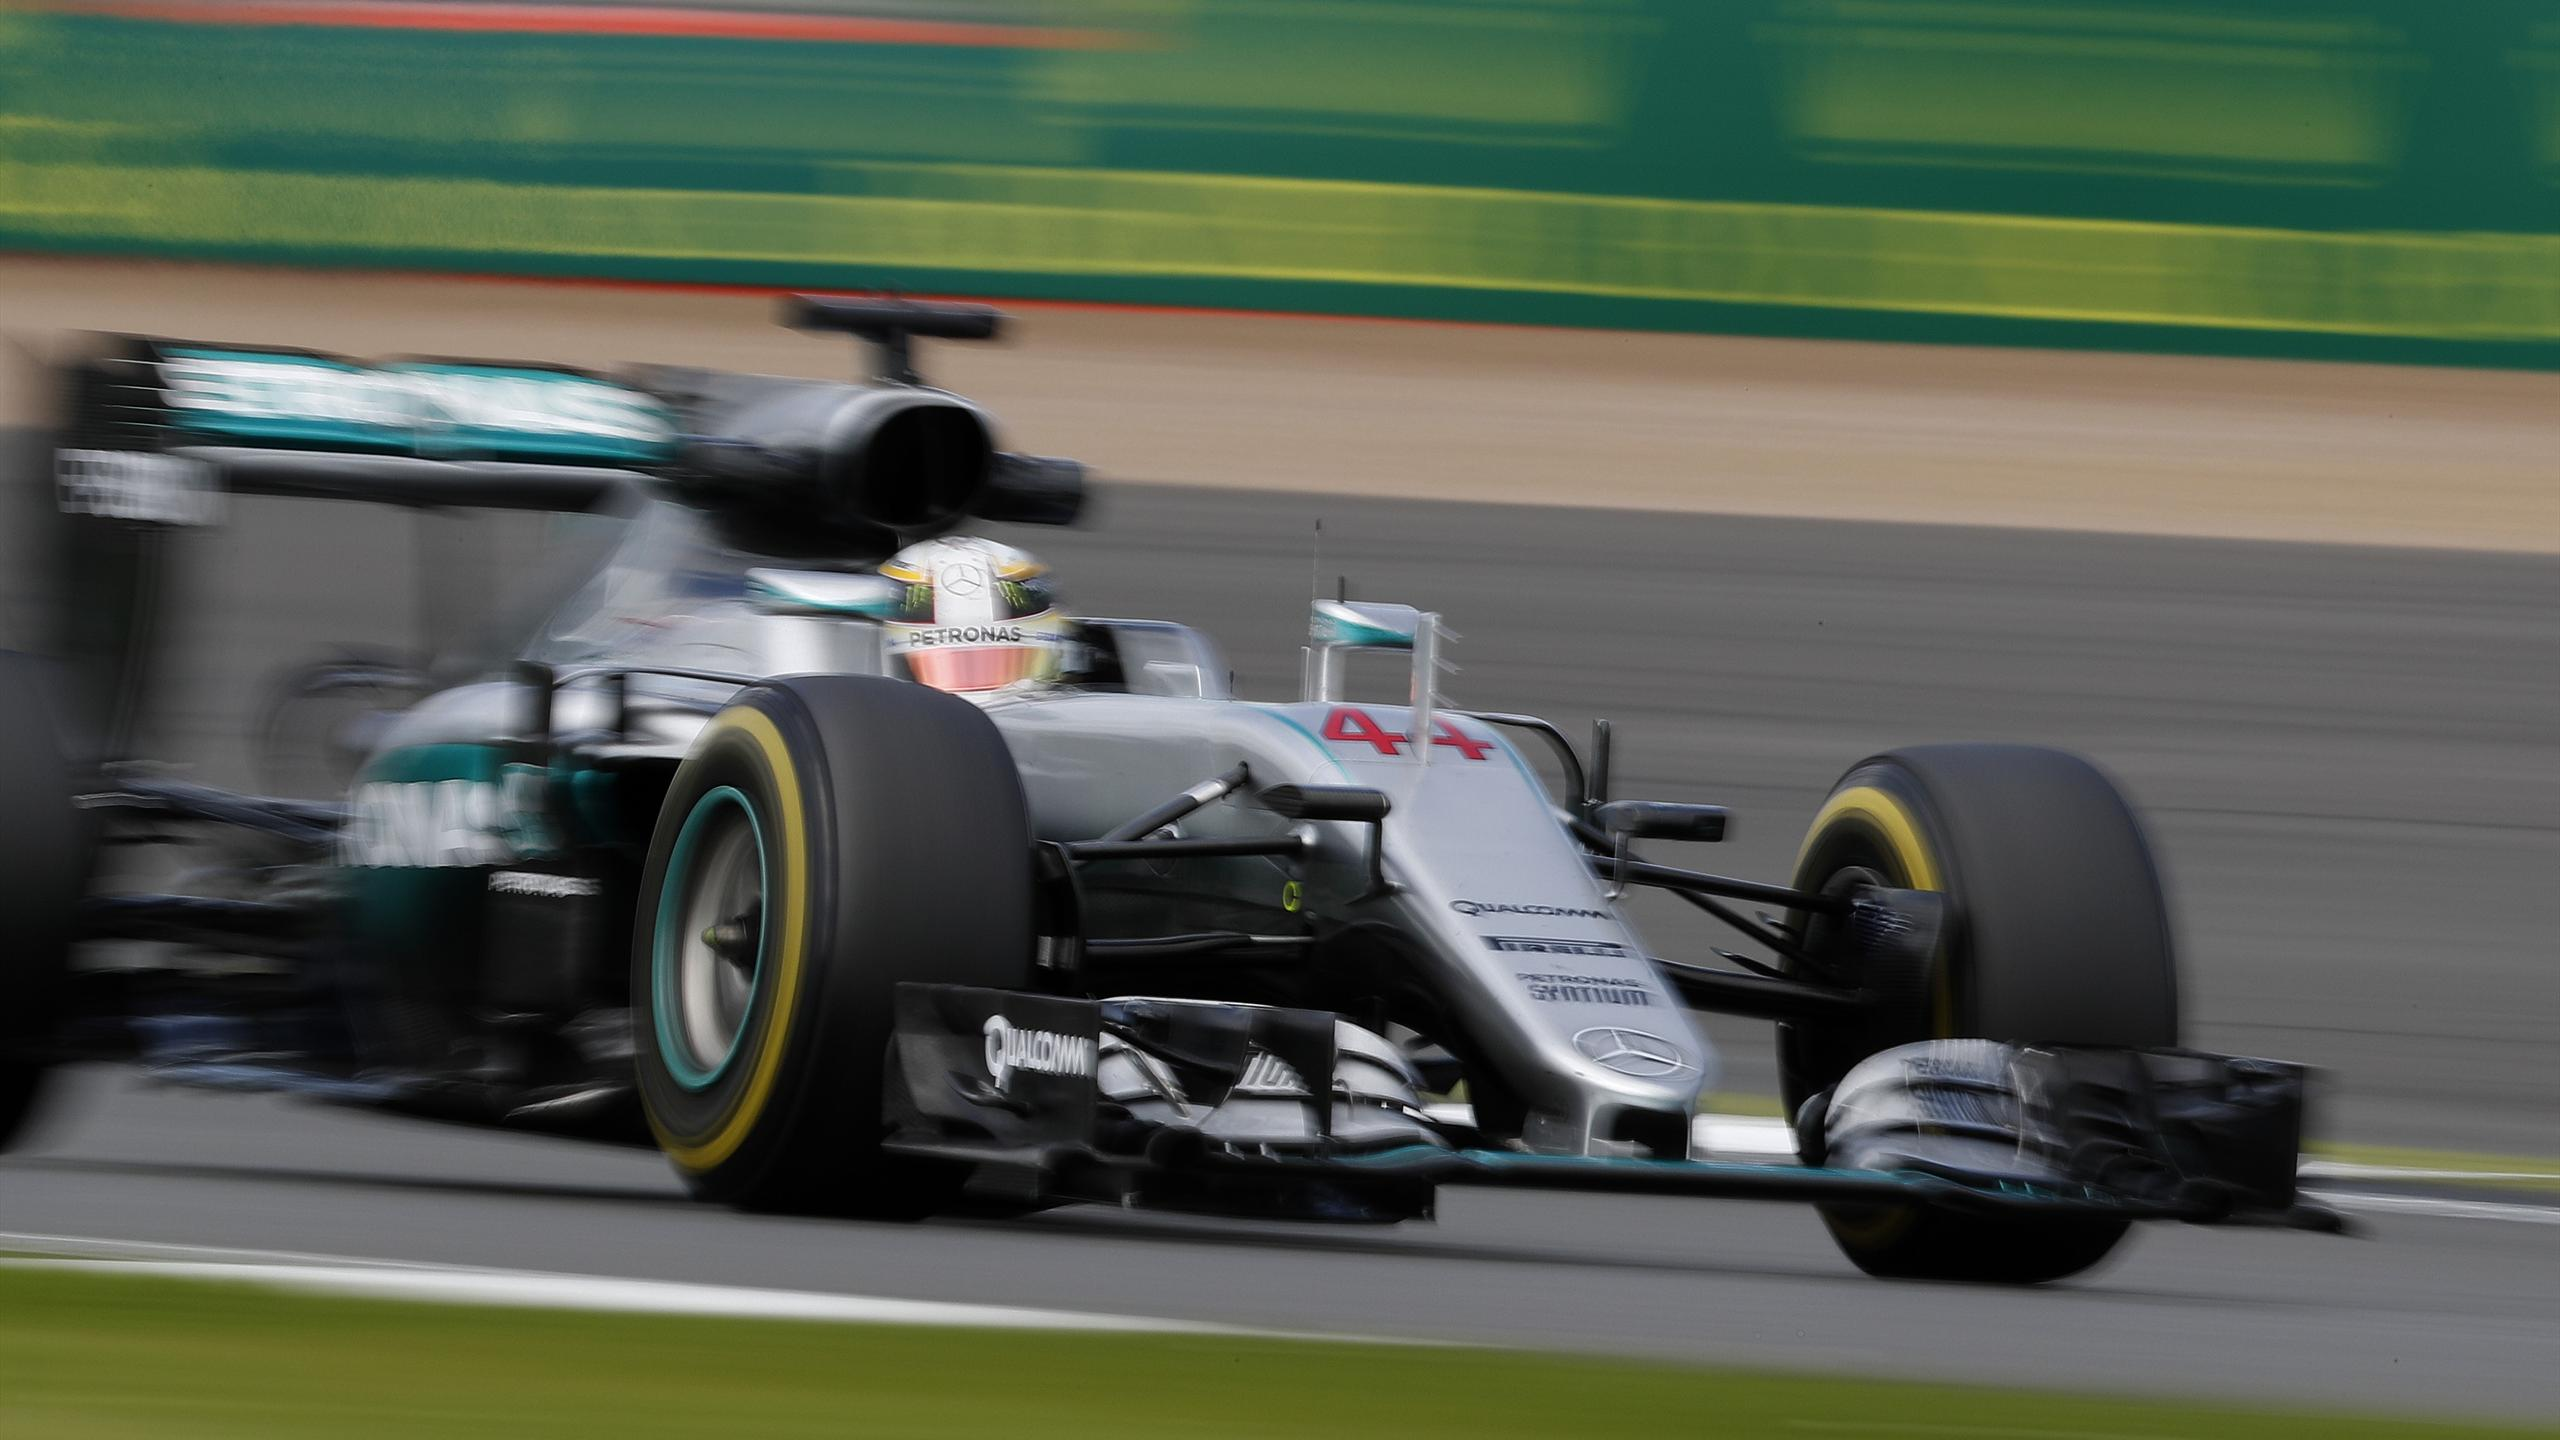 Mercedes AMG Petronas F1 Team's British driver Lewis Hamilton drives during the second practice session at Silverstone motor racing circuit in Silverstone, central England, on July 8, 2016, ahead of the July 10 British Formula One Grand Prix.